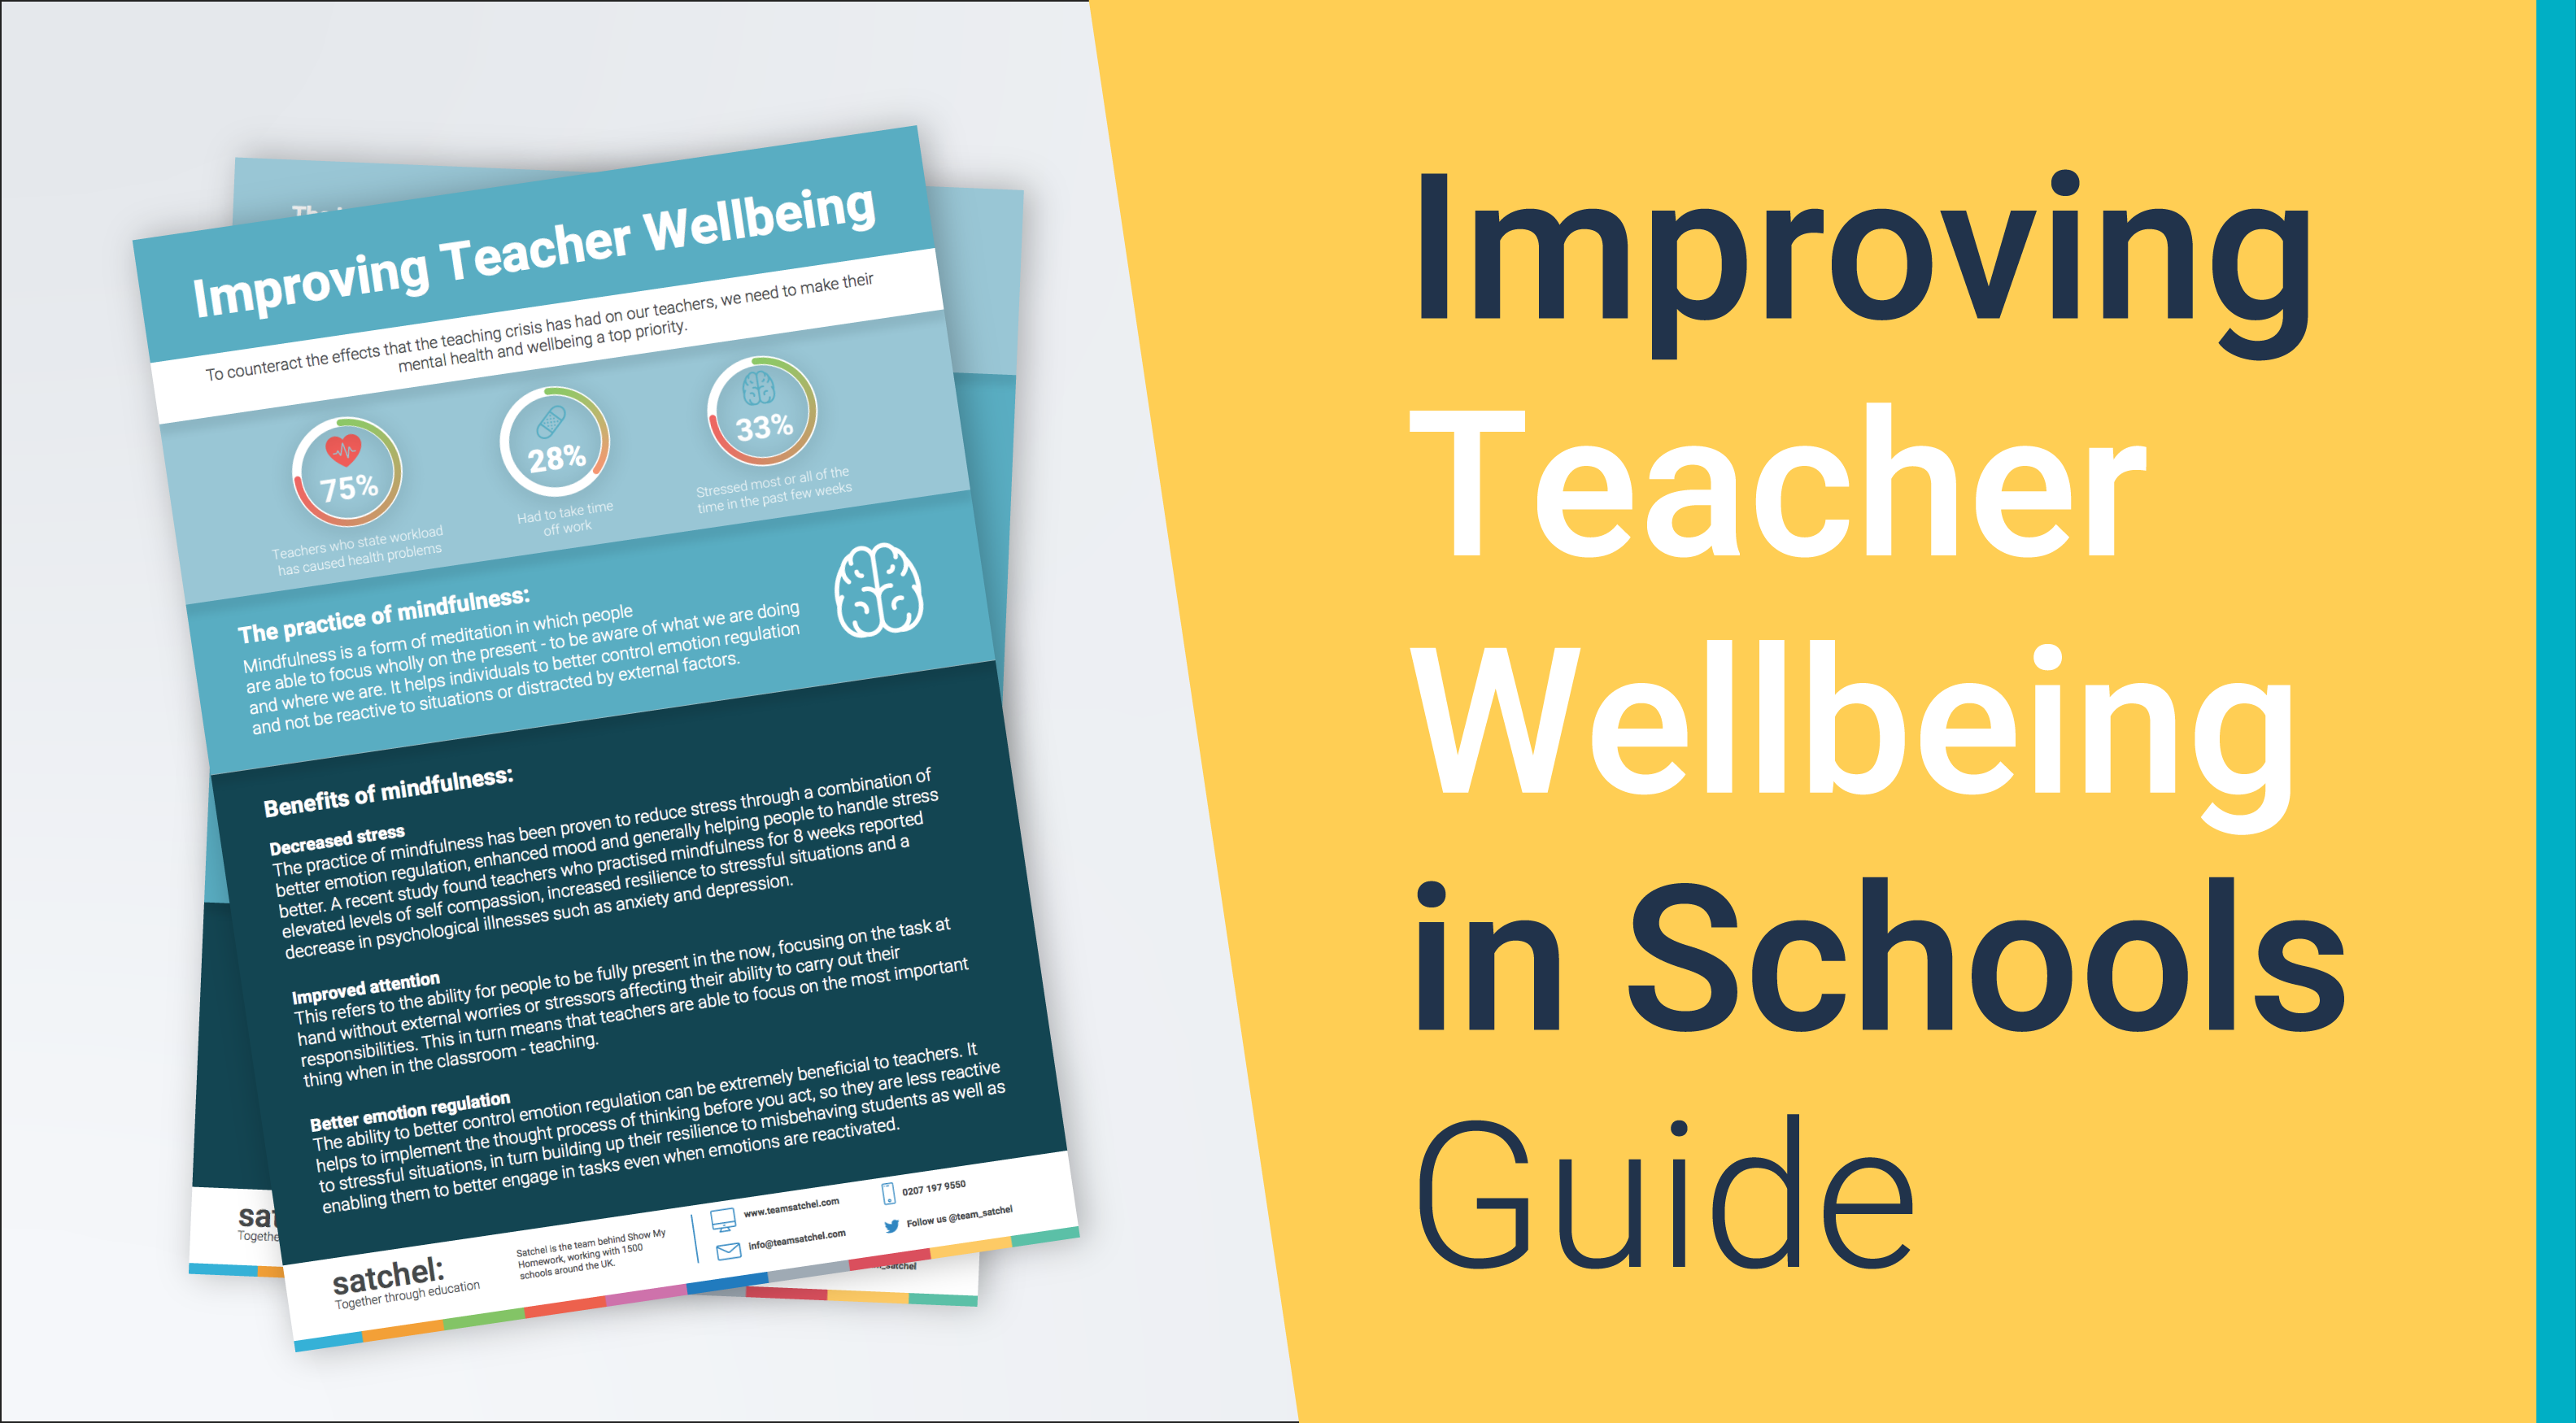 Improving Teacher Wellbeing Guide